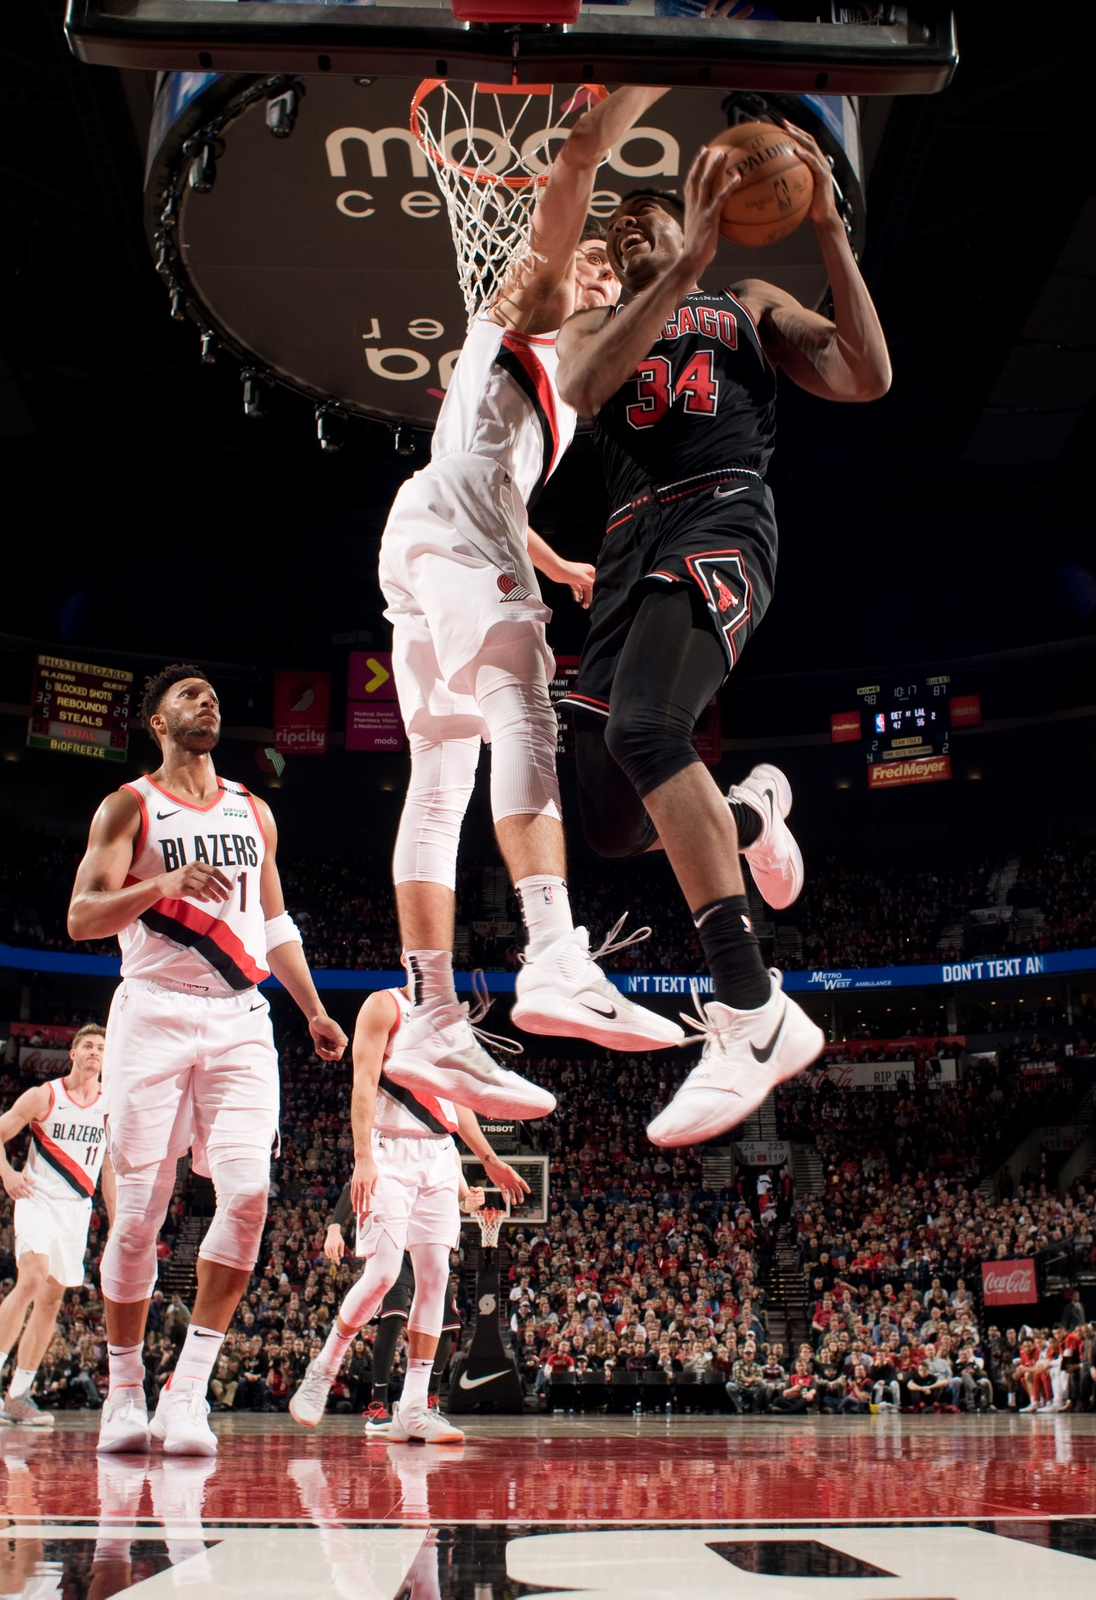 Wendell Carter Jr. #34 of the Chicago Bulls shoots the ball during the game against Jusuf Nurkic #27 of the Portland Trail Blazers on January 9, 2019 at the Moda Center Arena in Portland, Oregon.